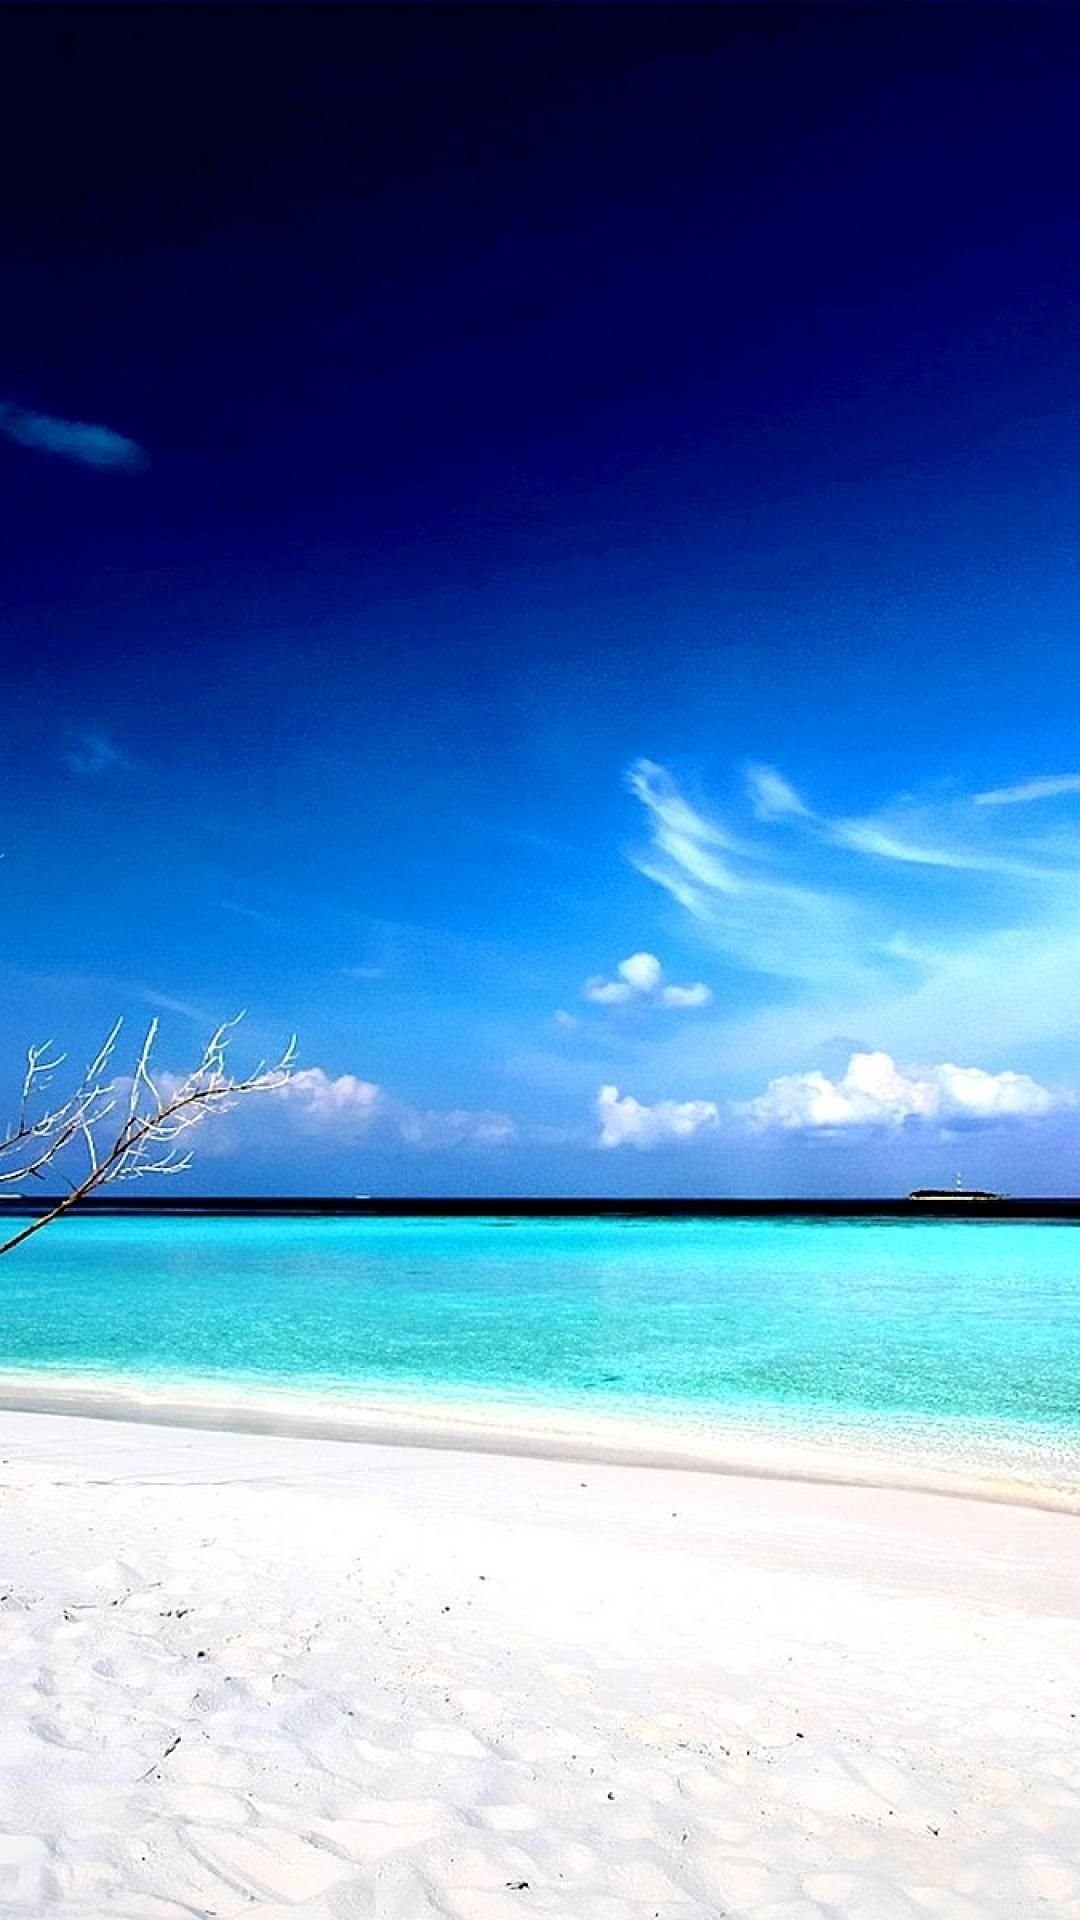 hd beach wallpapers 1080p nature beach iphone 6 plus